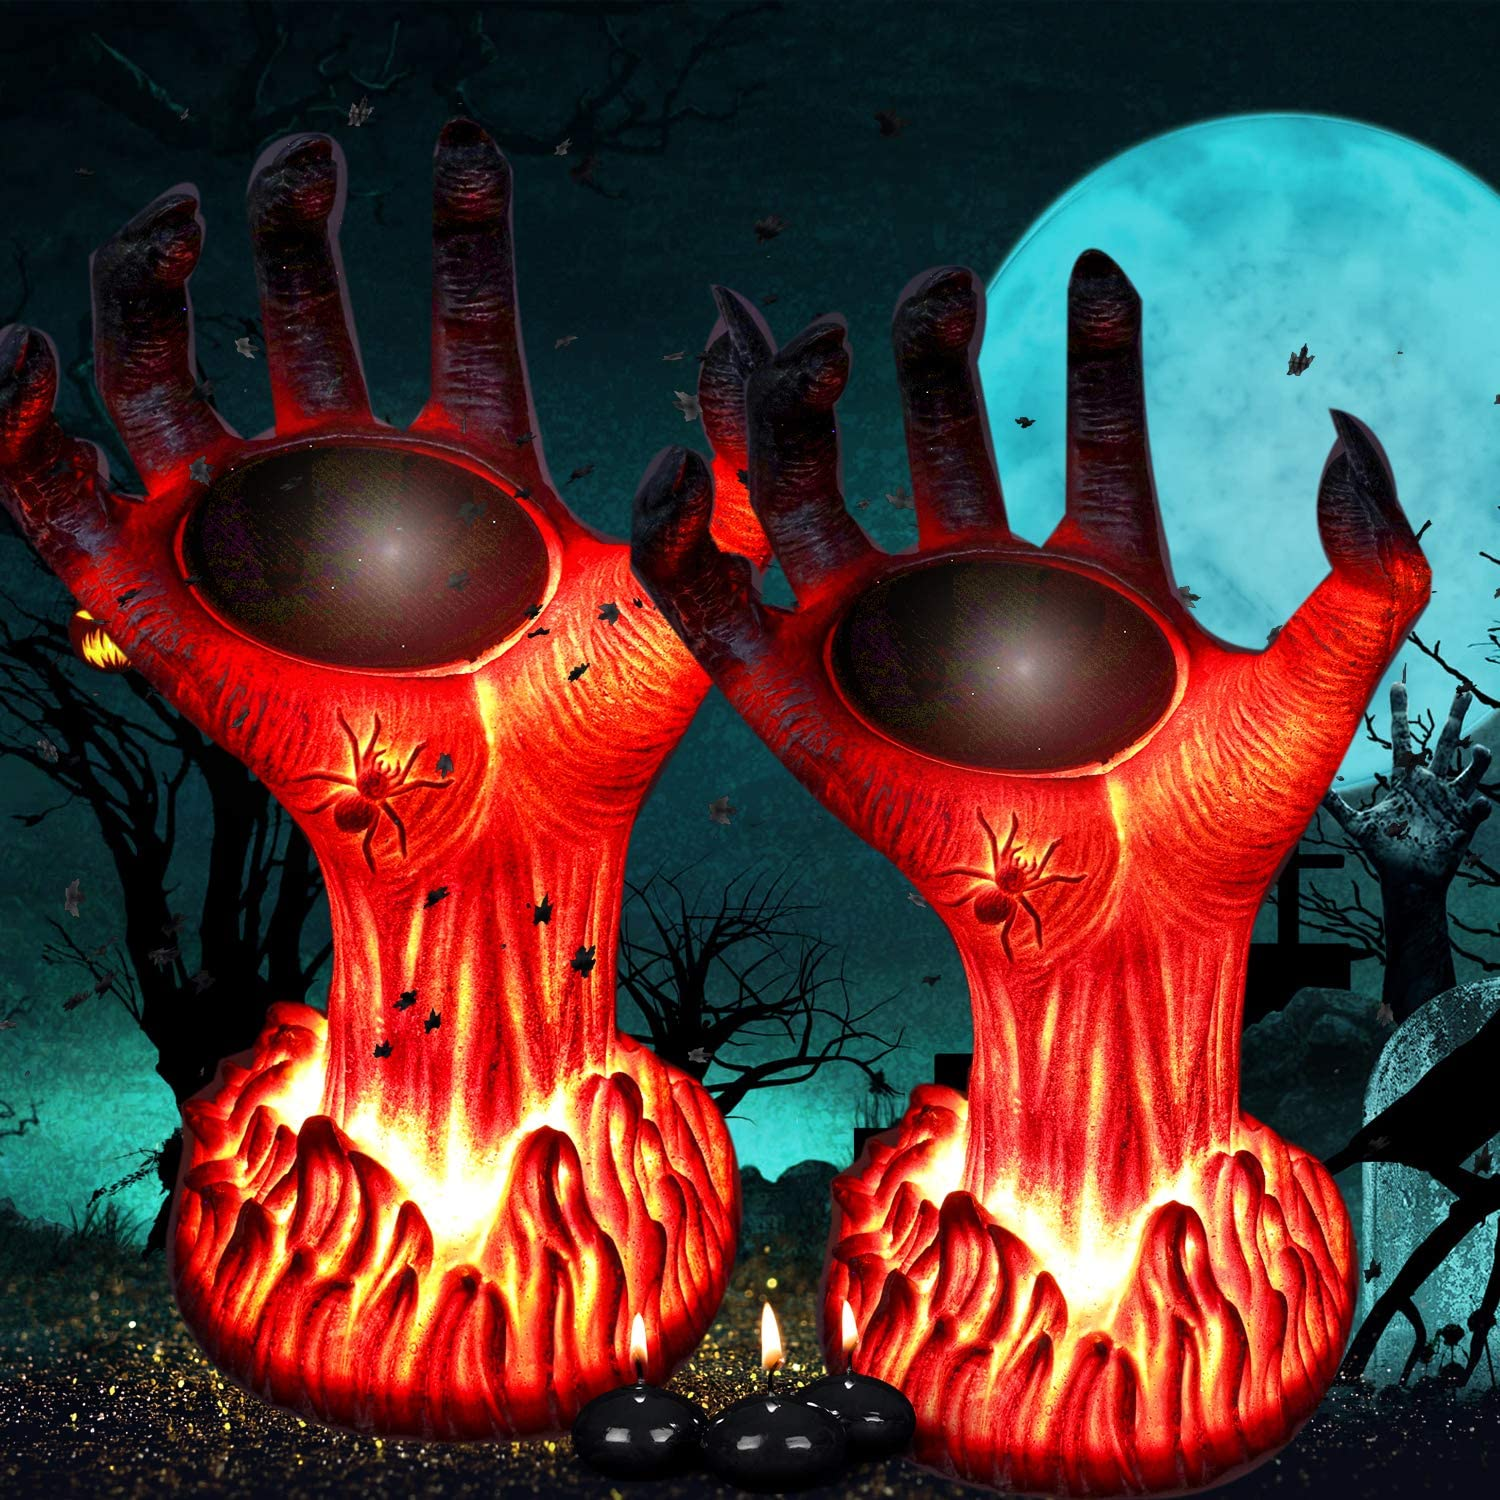 TONULAX Halloween Decoration Lights Outdoor, Solar Powered Burning Witch Hand Lights, Flickering Flame Lantern Lights, Super Realistic, Perfect Halloween Decor for Porch, Yard, Garden, Lawn(2 Pack)